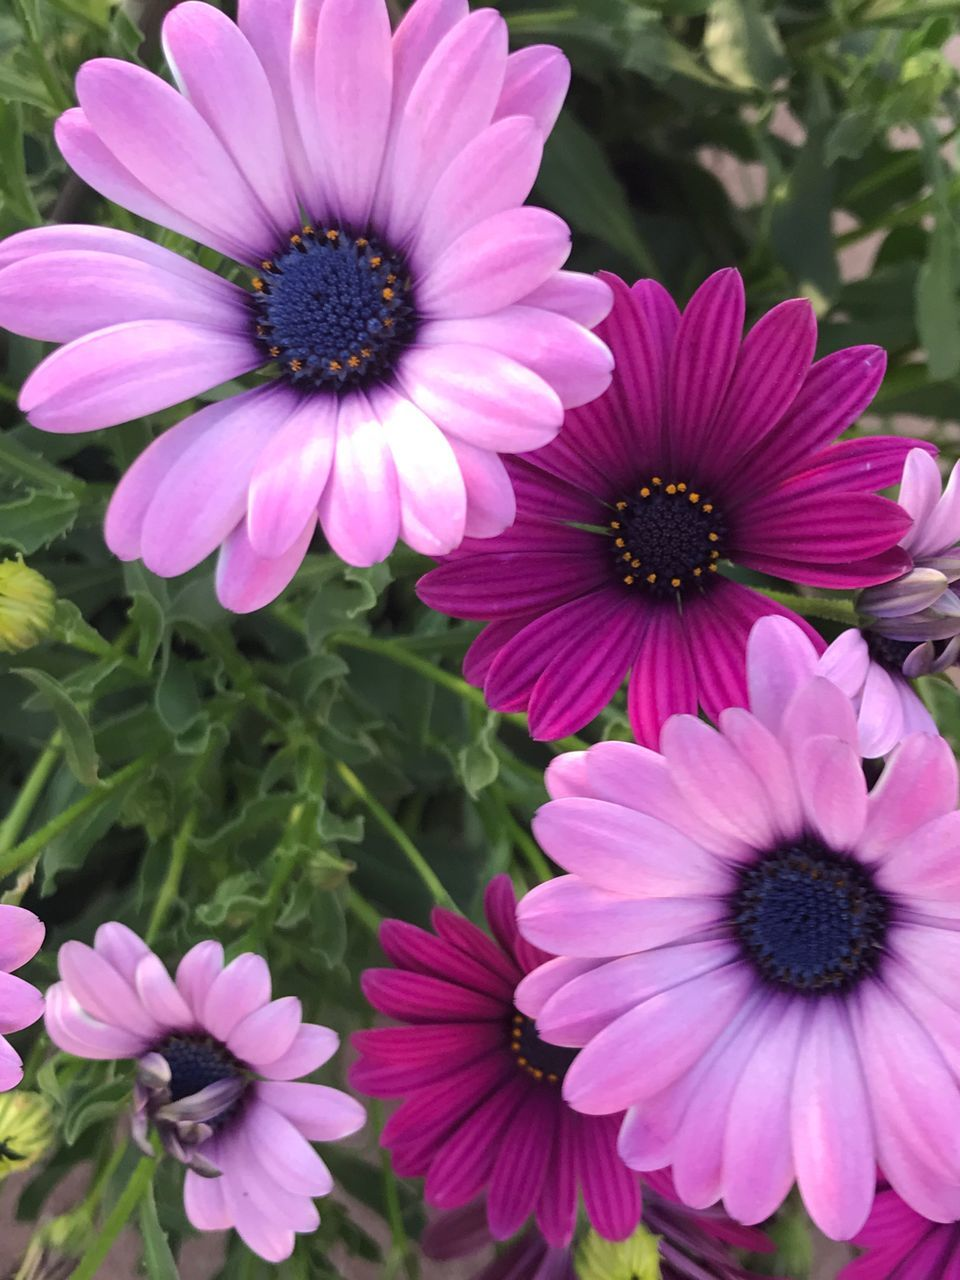 flower, petal, beauty in nature, growth, nature, flower head, fragility, freshness, blooming, plant, osteospermum, no people, pollen, day, outdoors, close-up, eastern purple coneflower